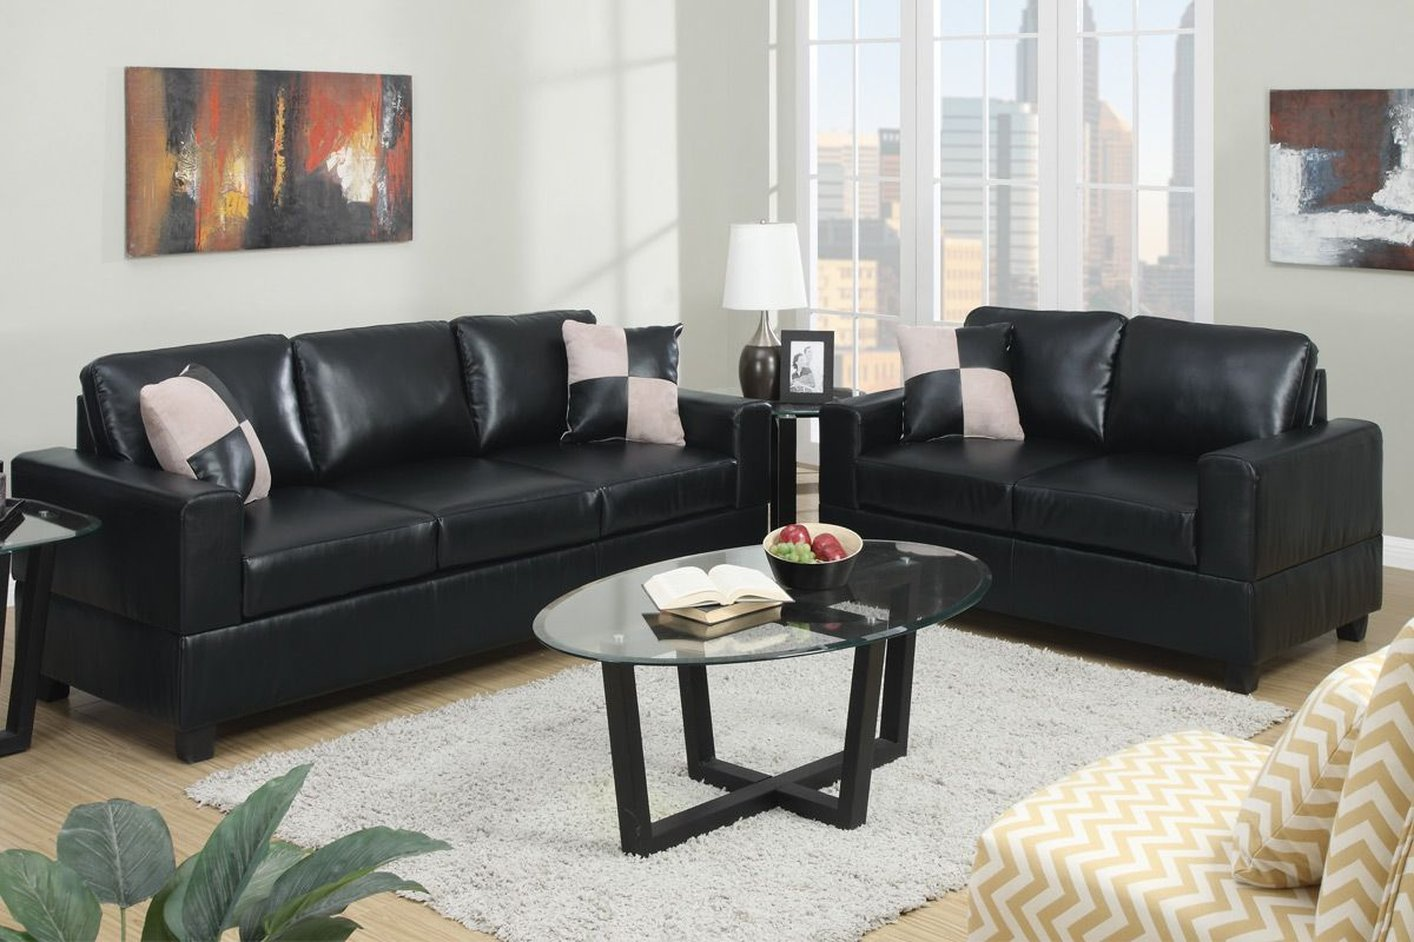 Poundex tesse f7598 black leather sofa and loveseat set for Leather sofa set